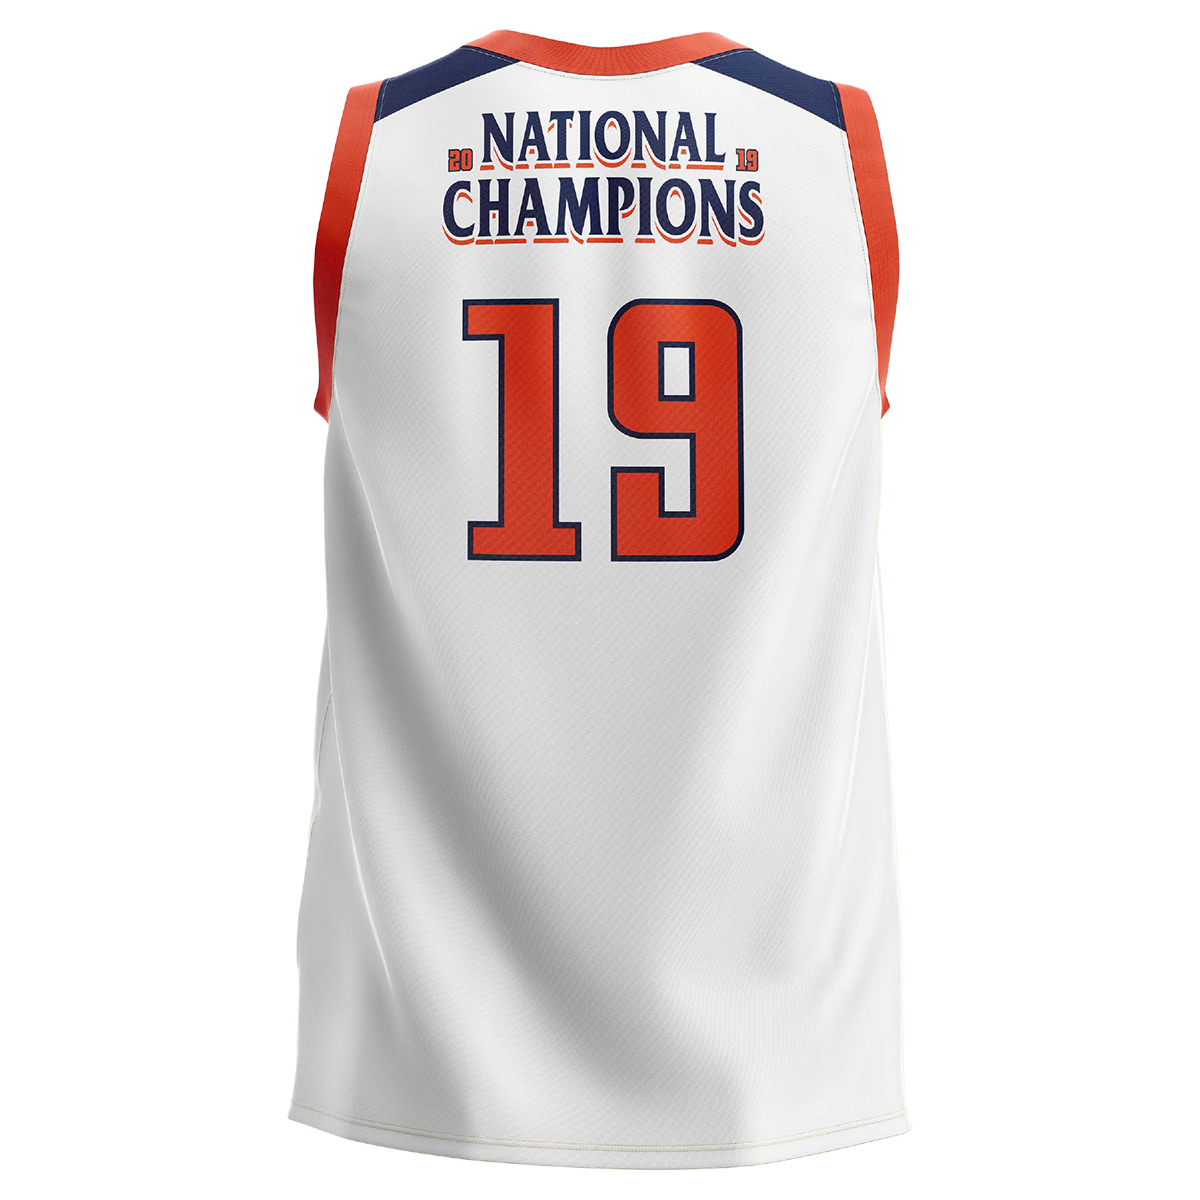 UVA 2019 National Champions Adult White Jersey